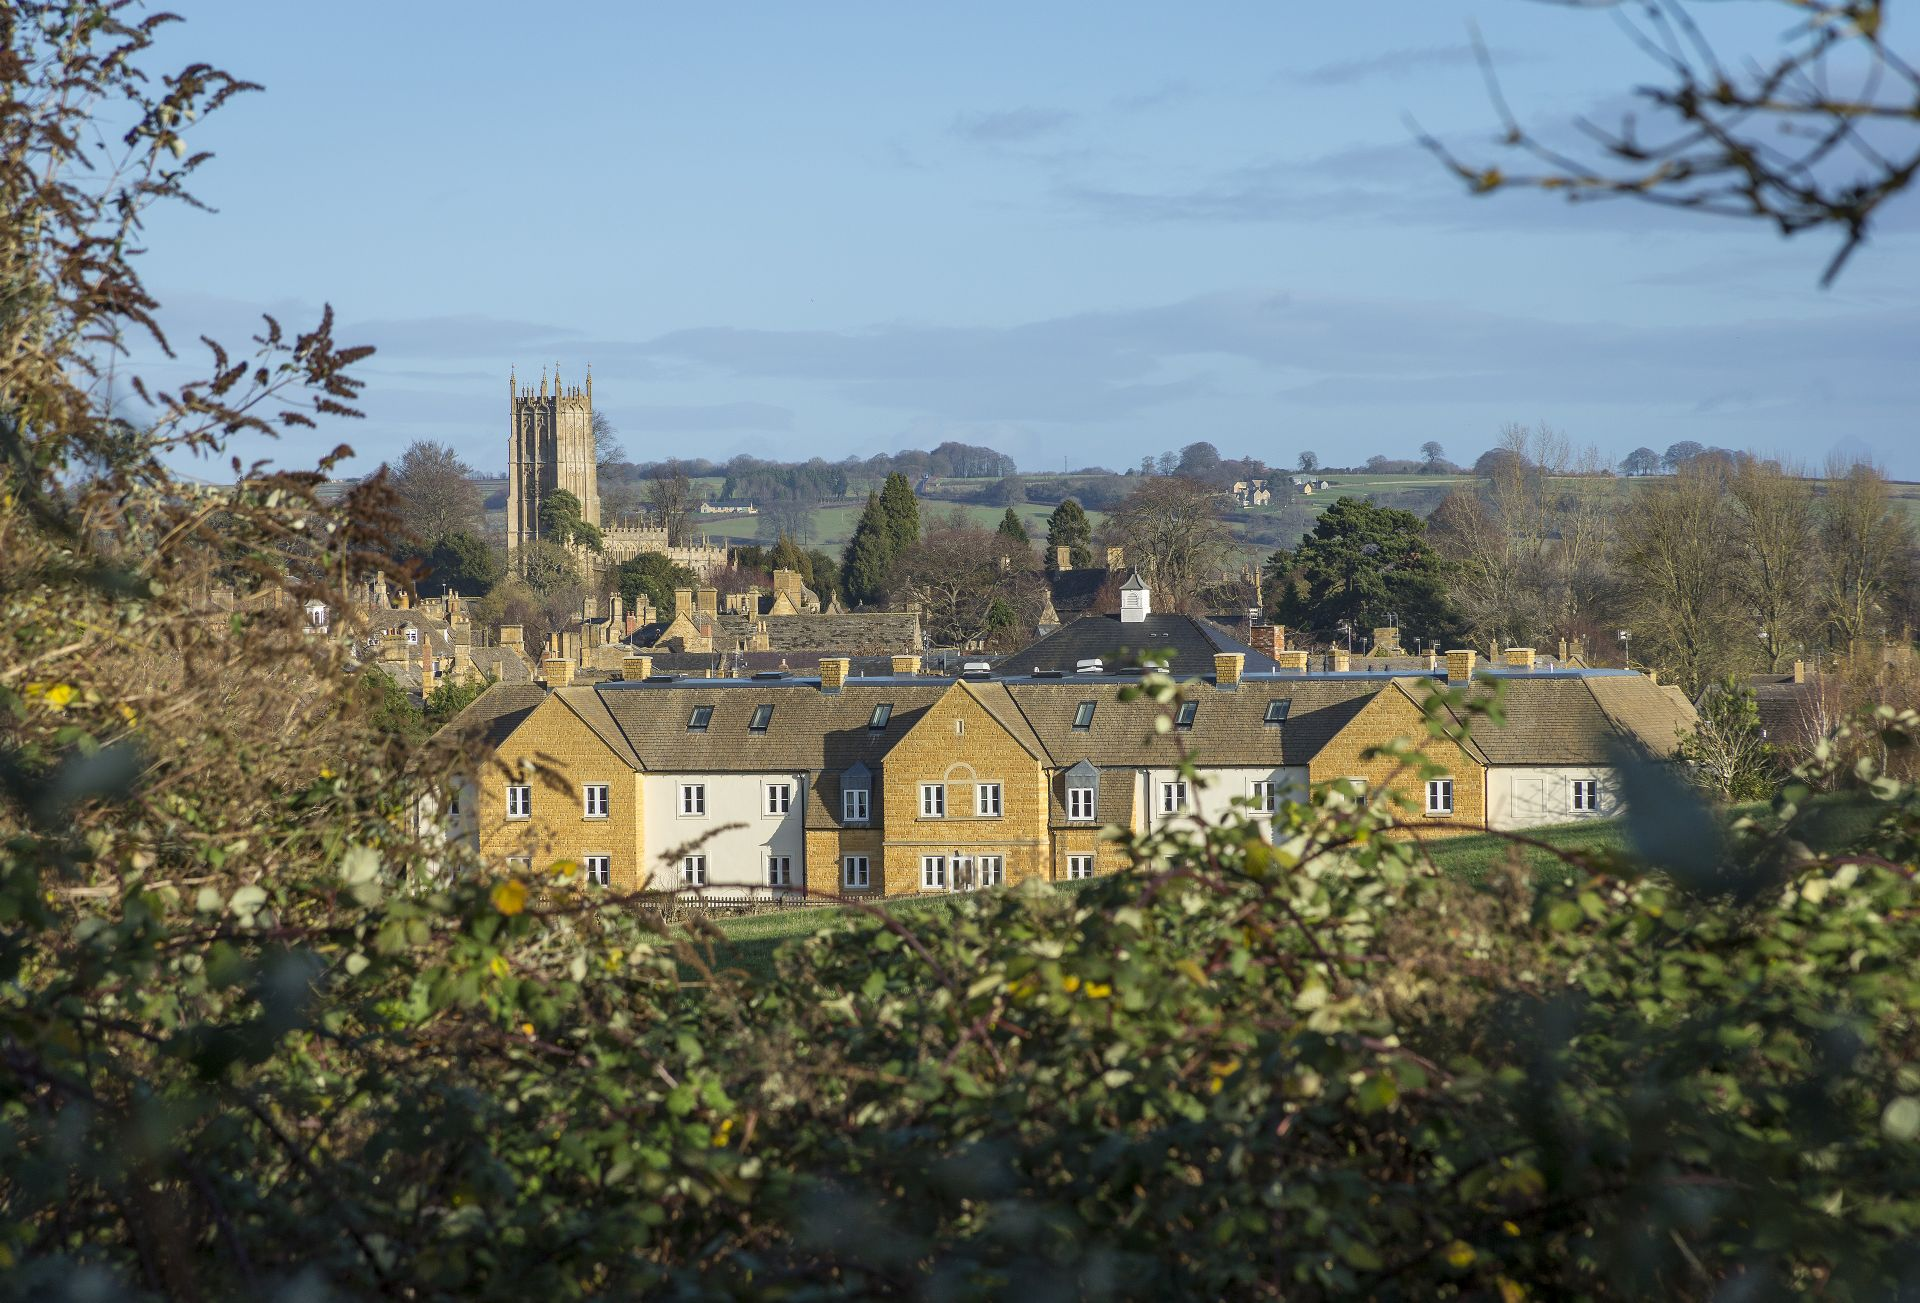 Stunning views from Compton House to the town of Chipping Campden